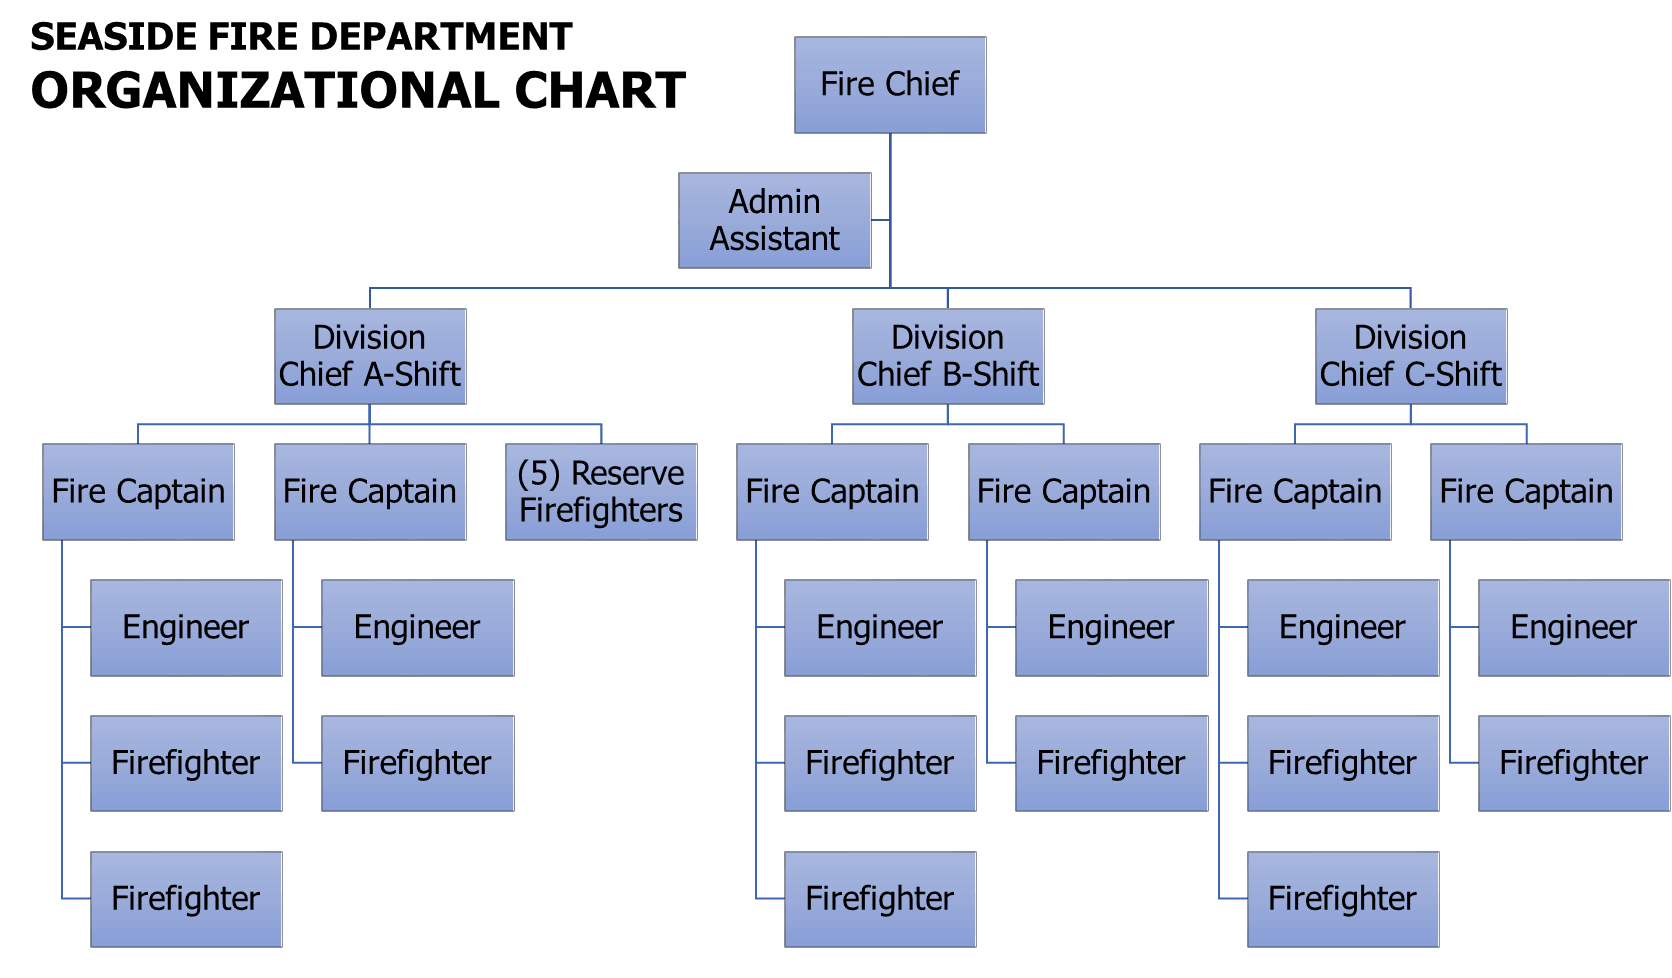 Flow chart of fire department personnel positions